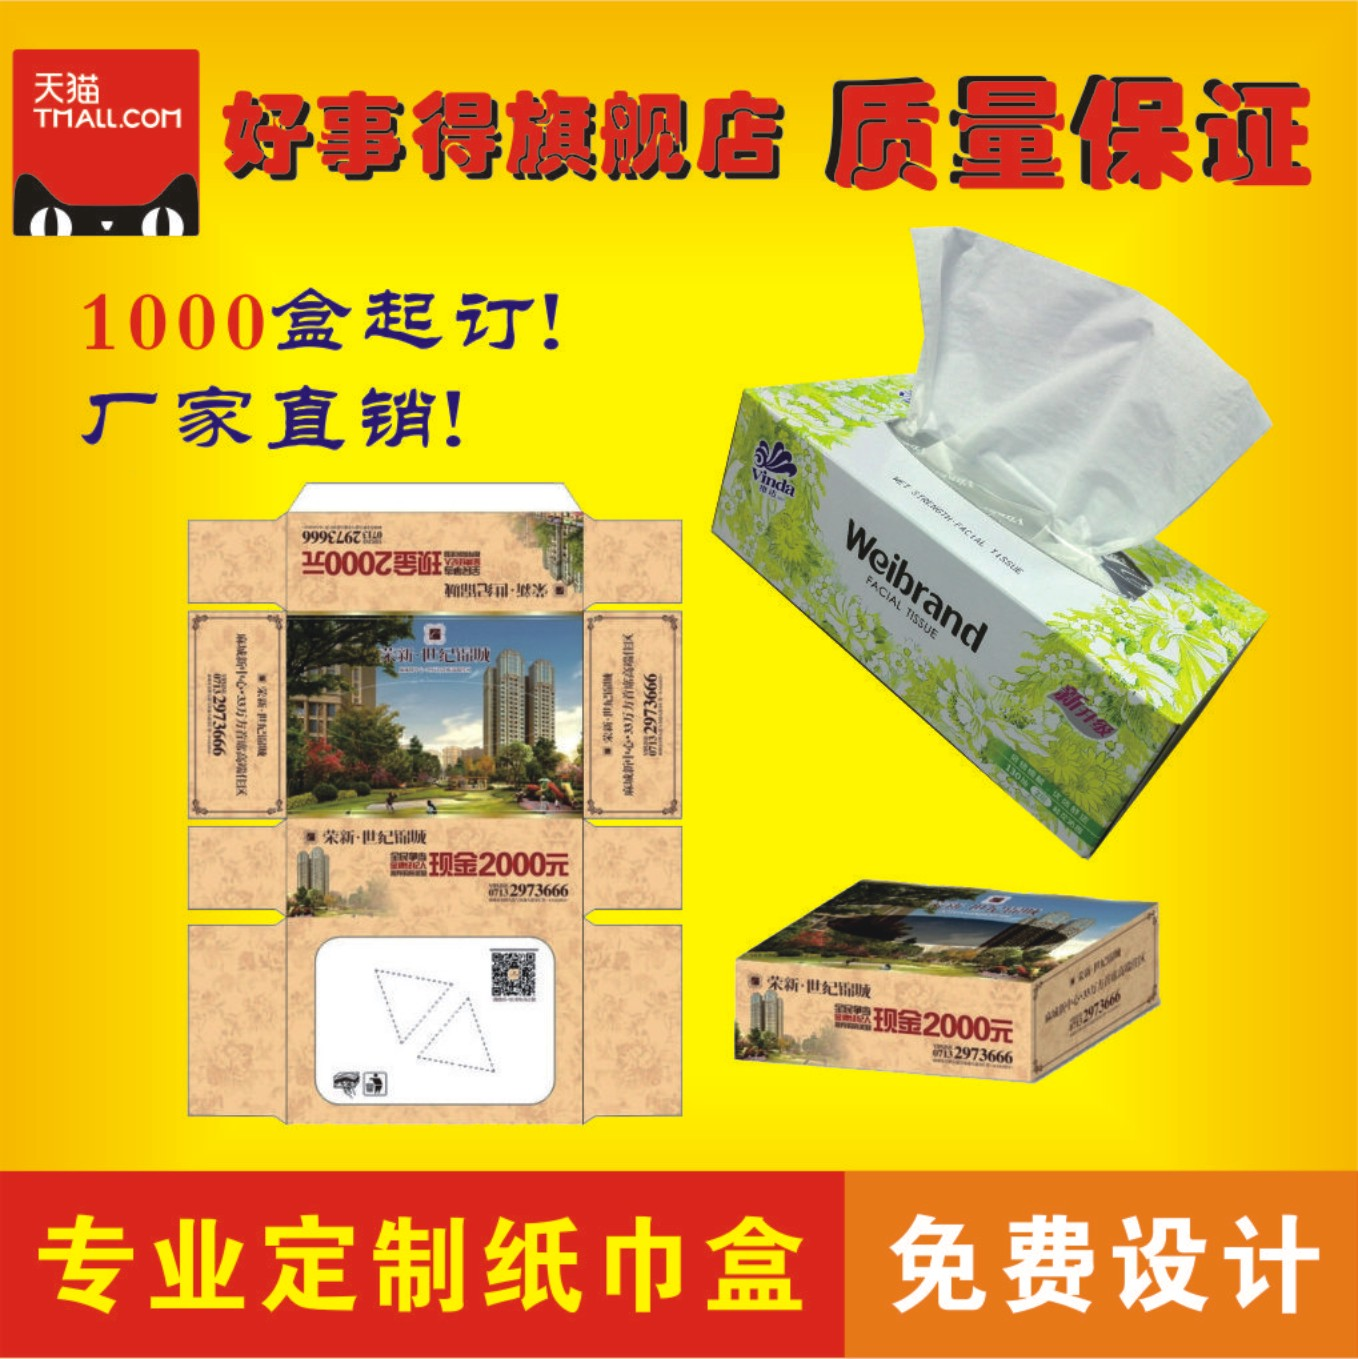 Customized pumping tray/paper pumping customized/tissue box pumping/advertising custom pumping tray/box pumping paper napkins paper towels Box